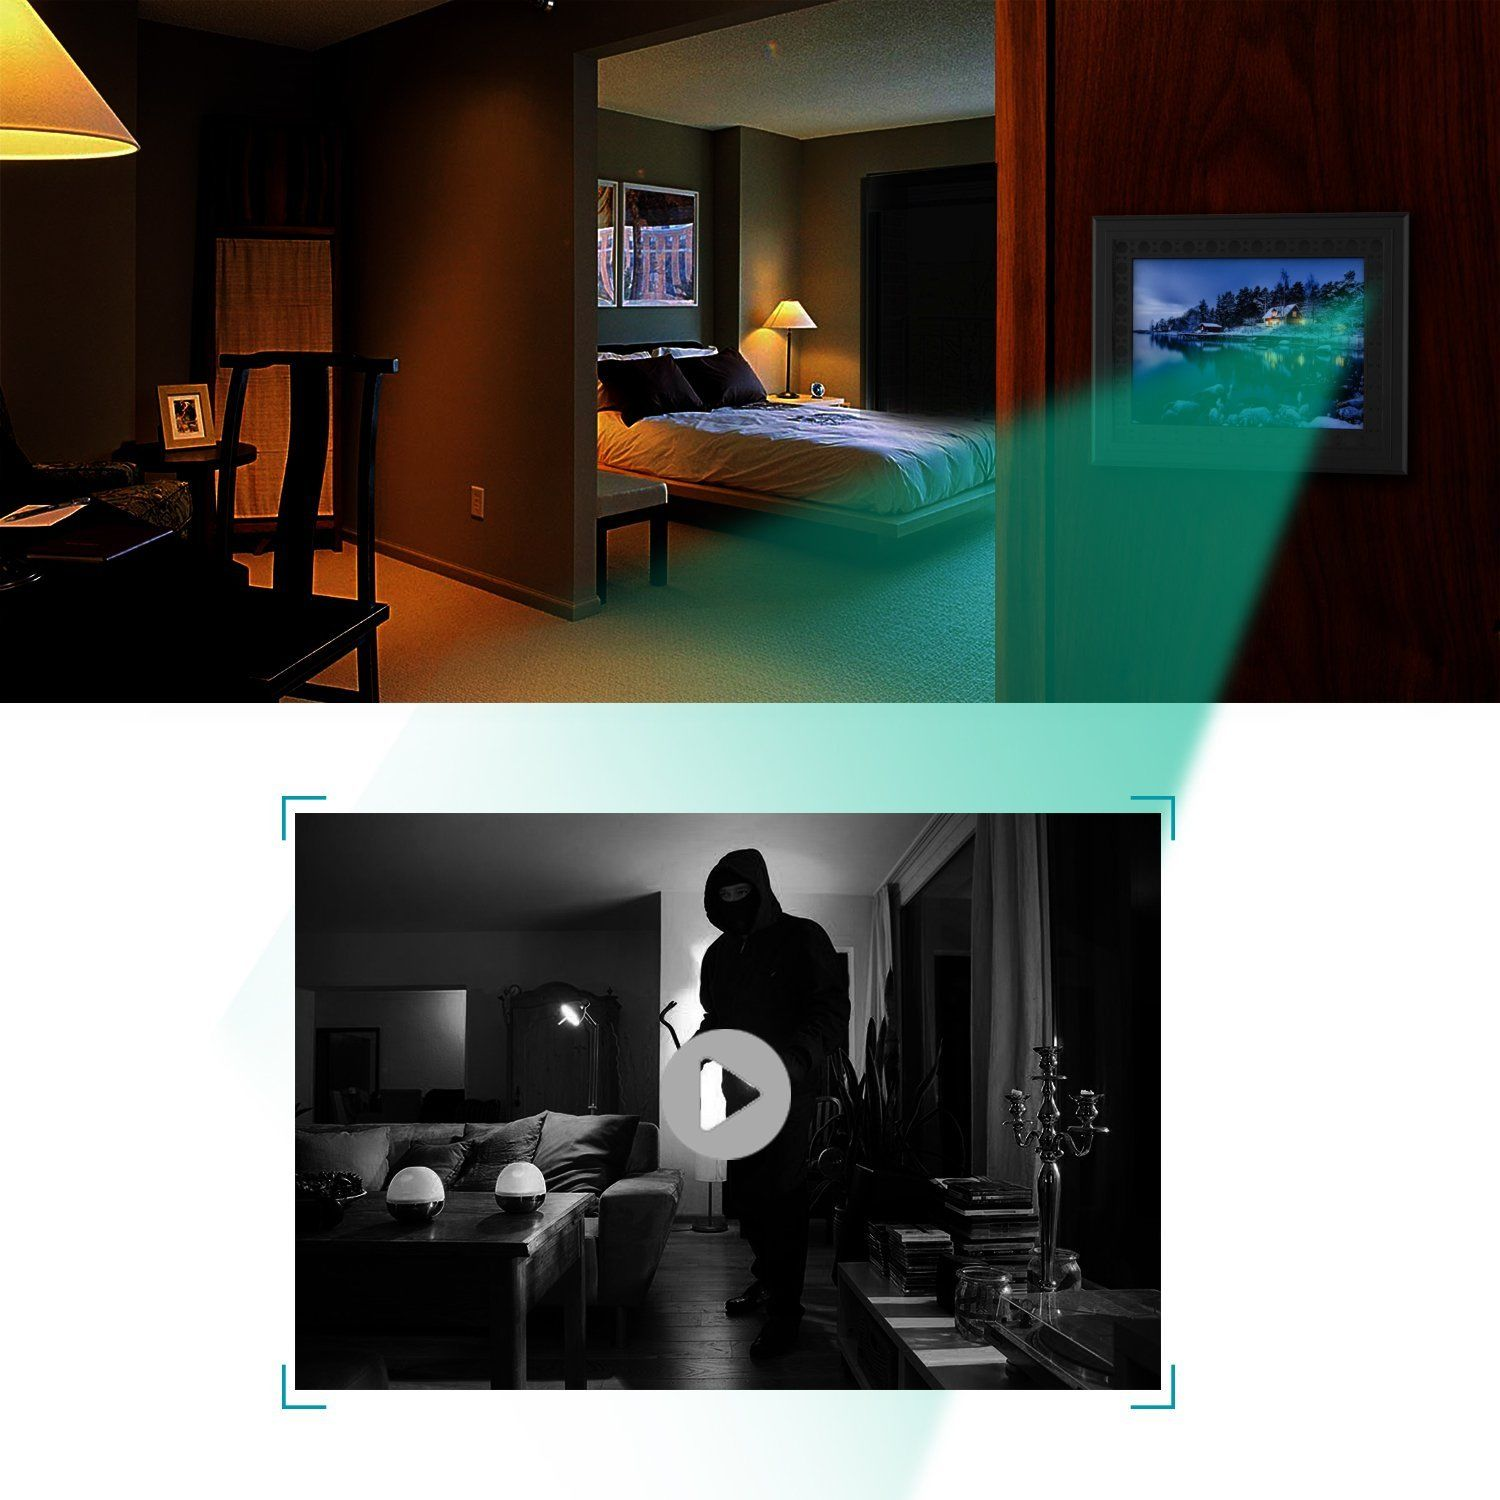 HD 720P Photo Frame Hidden Spy Camera - Night Vision